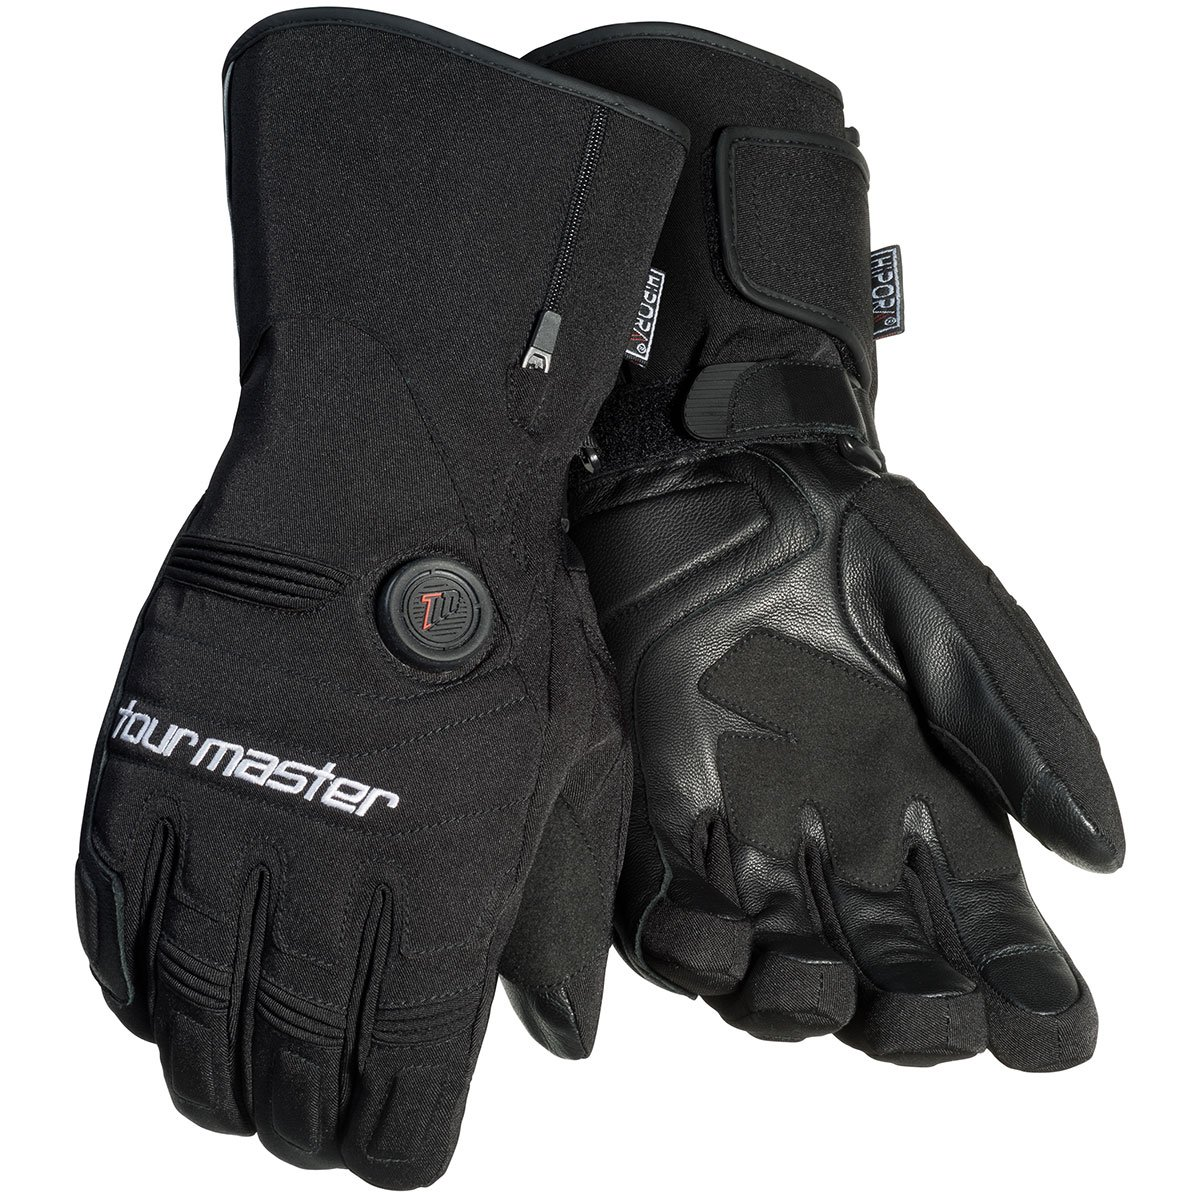 Tourmaster Women's Synergy 7.4V Battery Heated Textile Gloves (X-SMALL) (BLACK)